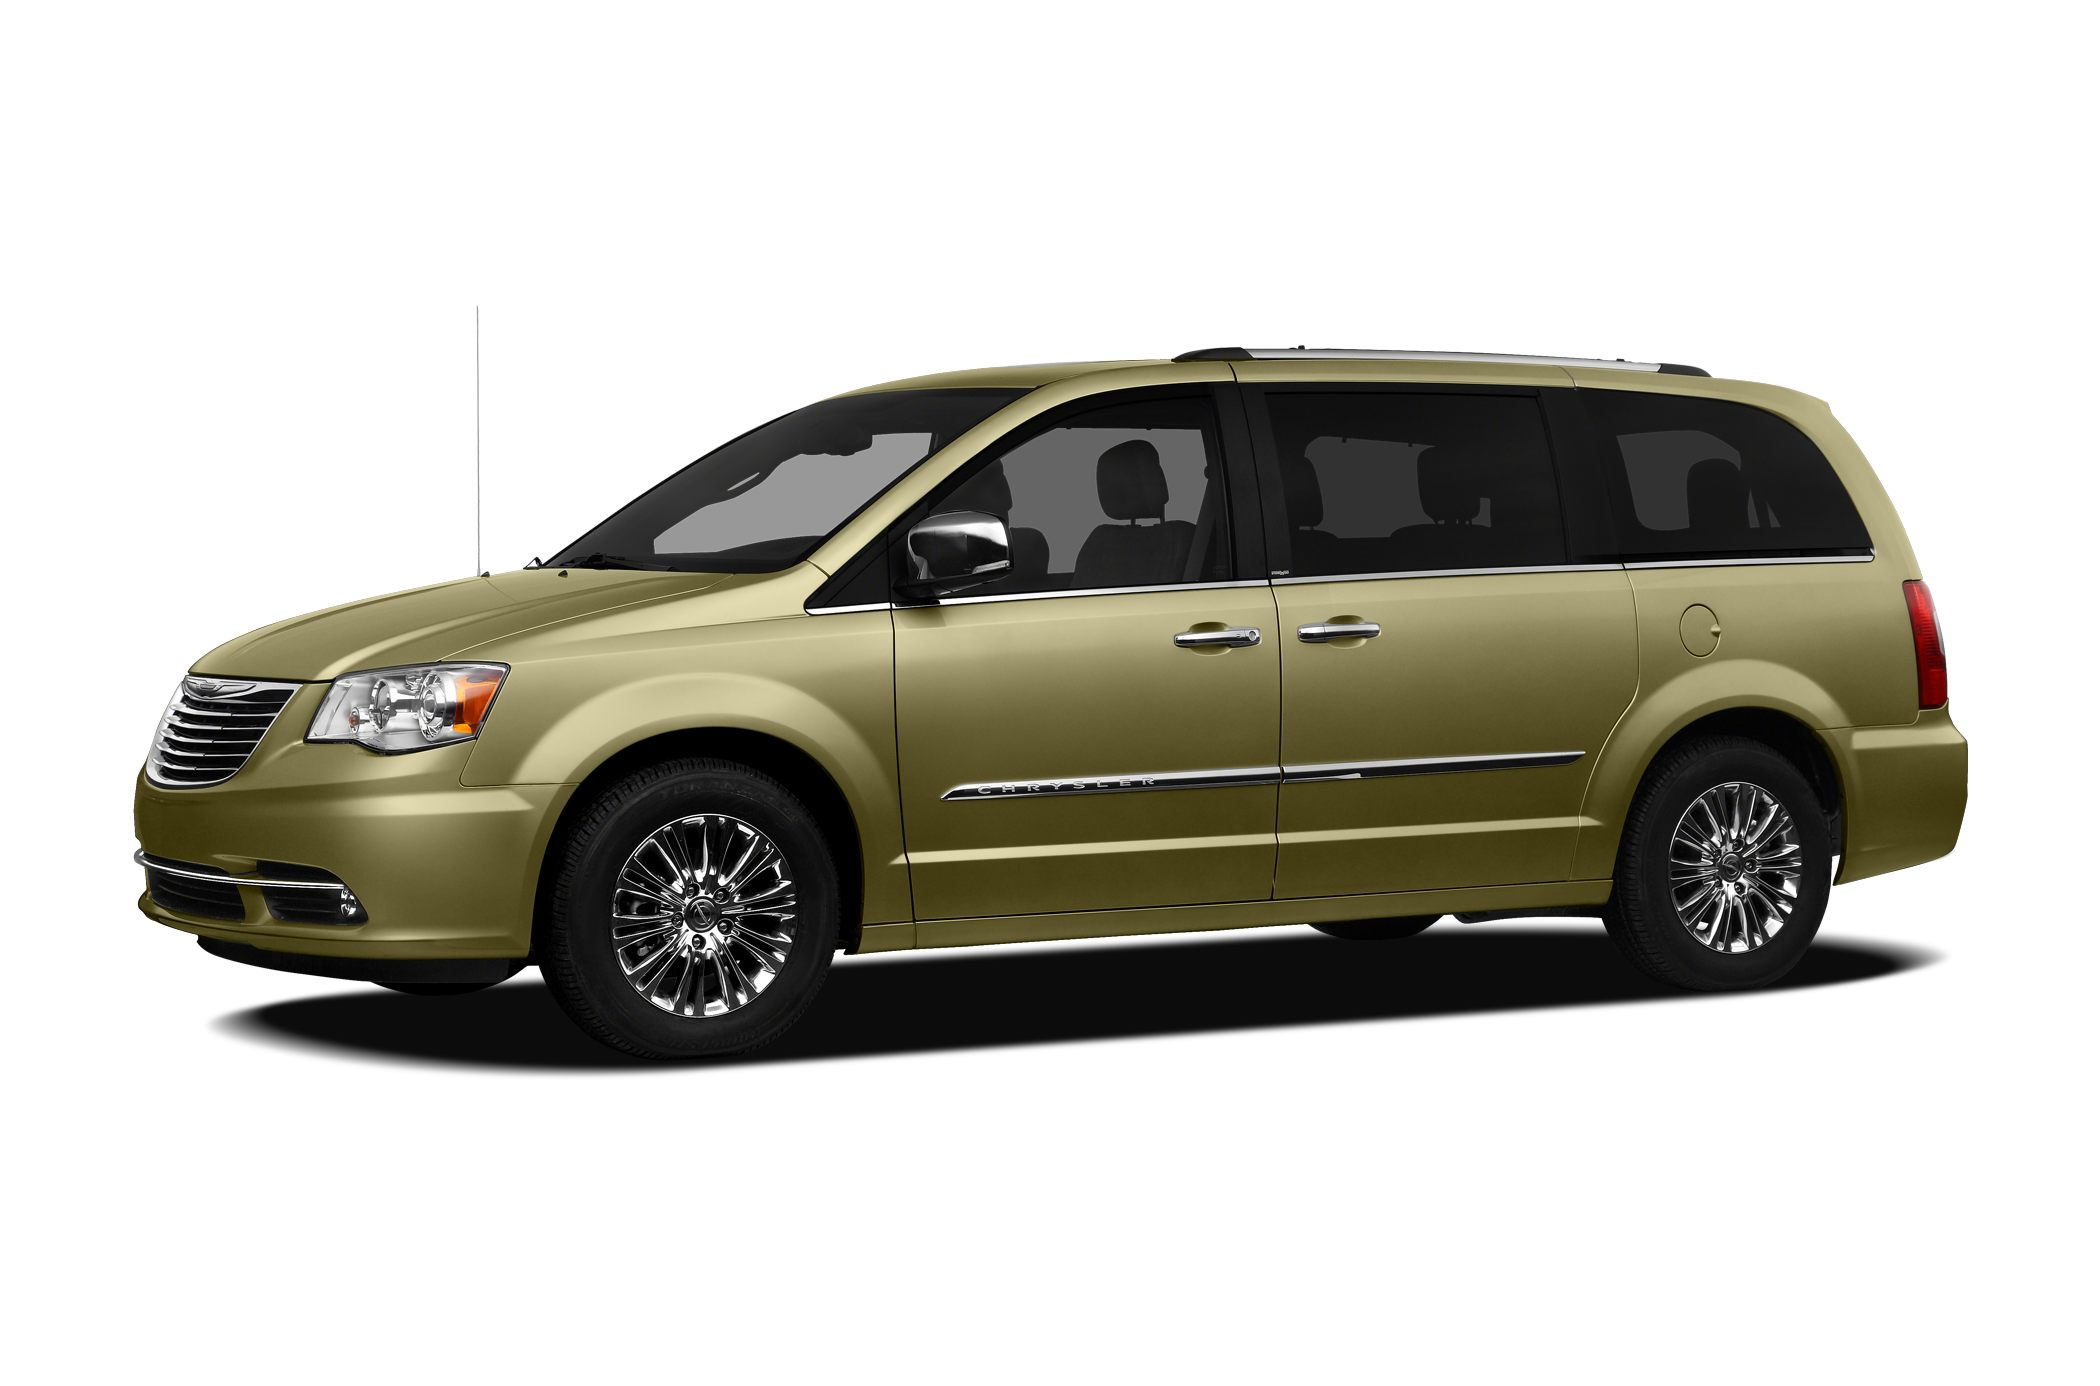 2012 Chrysler Town & Country Touring Minivan for sale in Tacoma for $21,986 with 37,628 miles